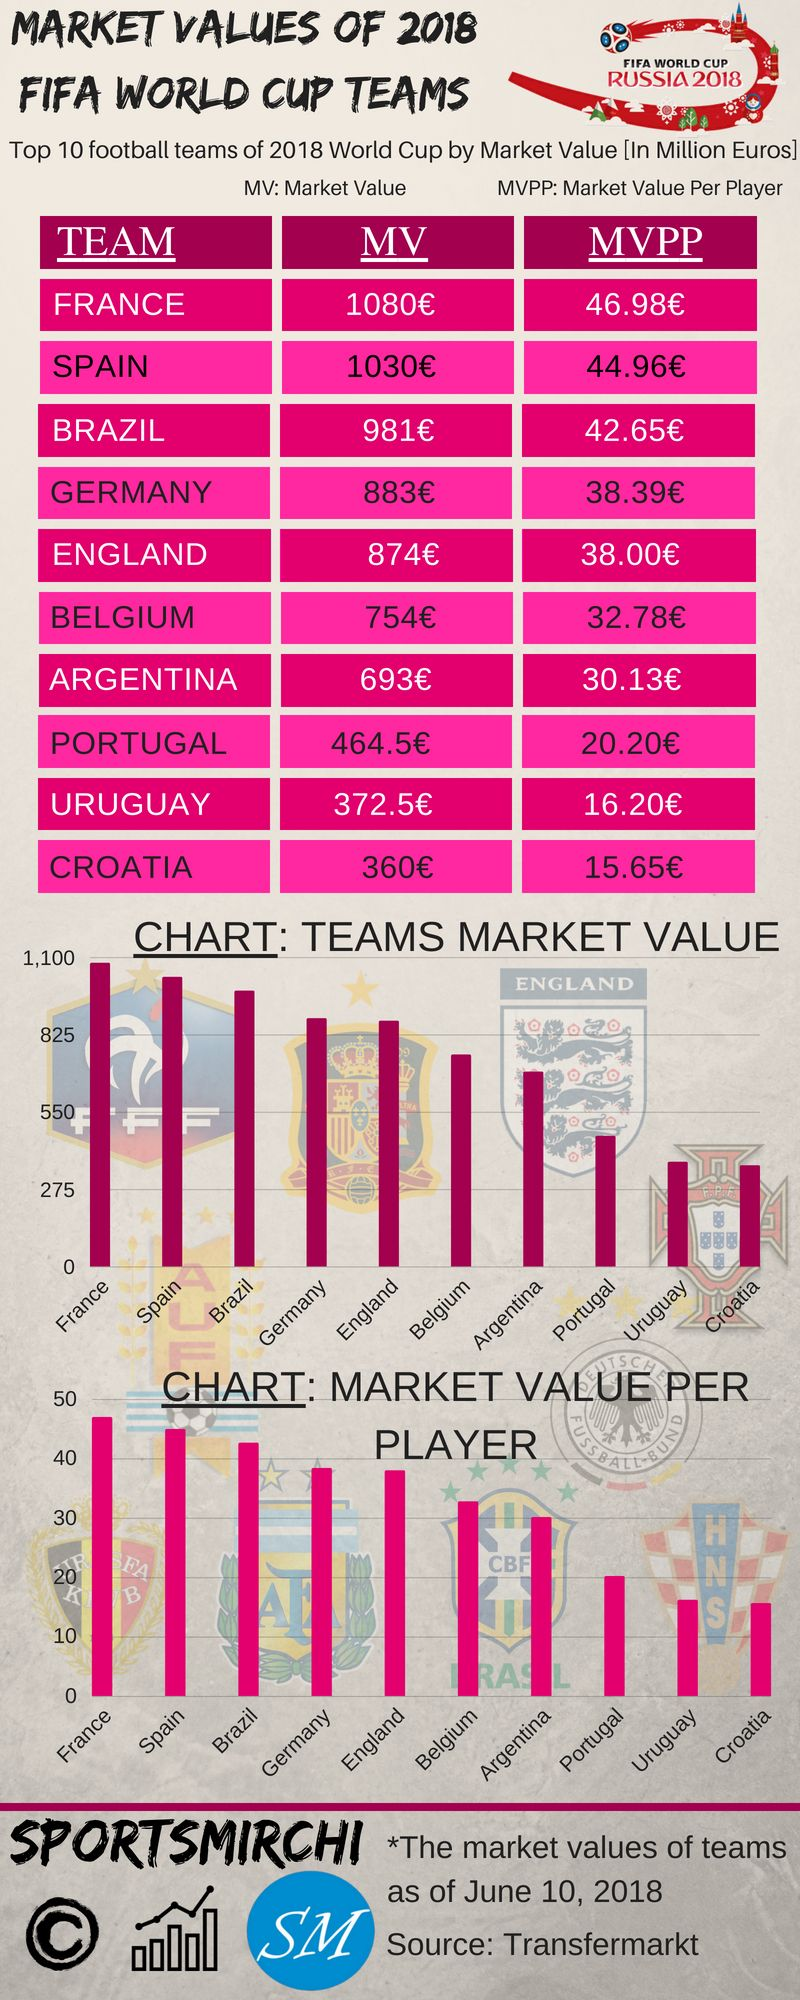 Market Values Of Fifa World Cup 2018 Teams Fifa Worldcup Russia France Footballworldcup Fifa World Cup Teams World Cup Teams Fifa World Cup